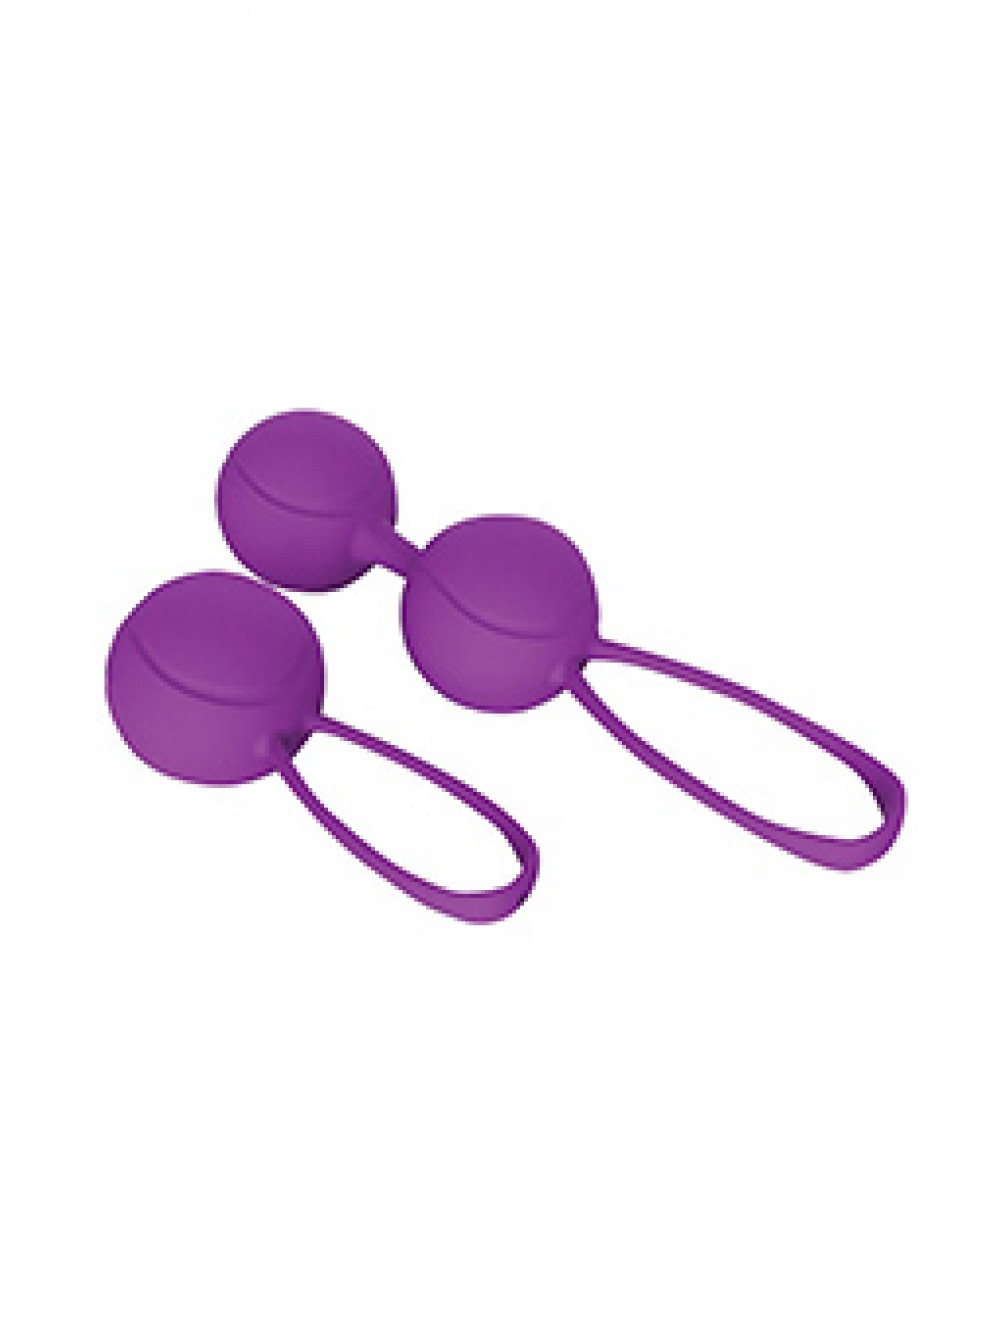 PLEASURE KEGEL BALLS SET PURPLE